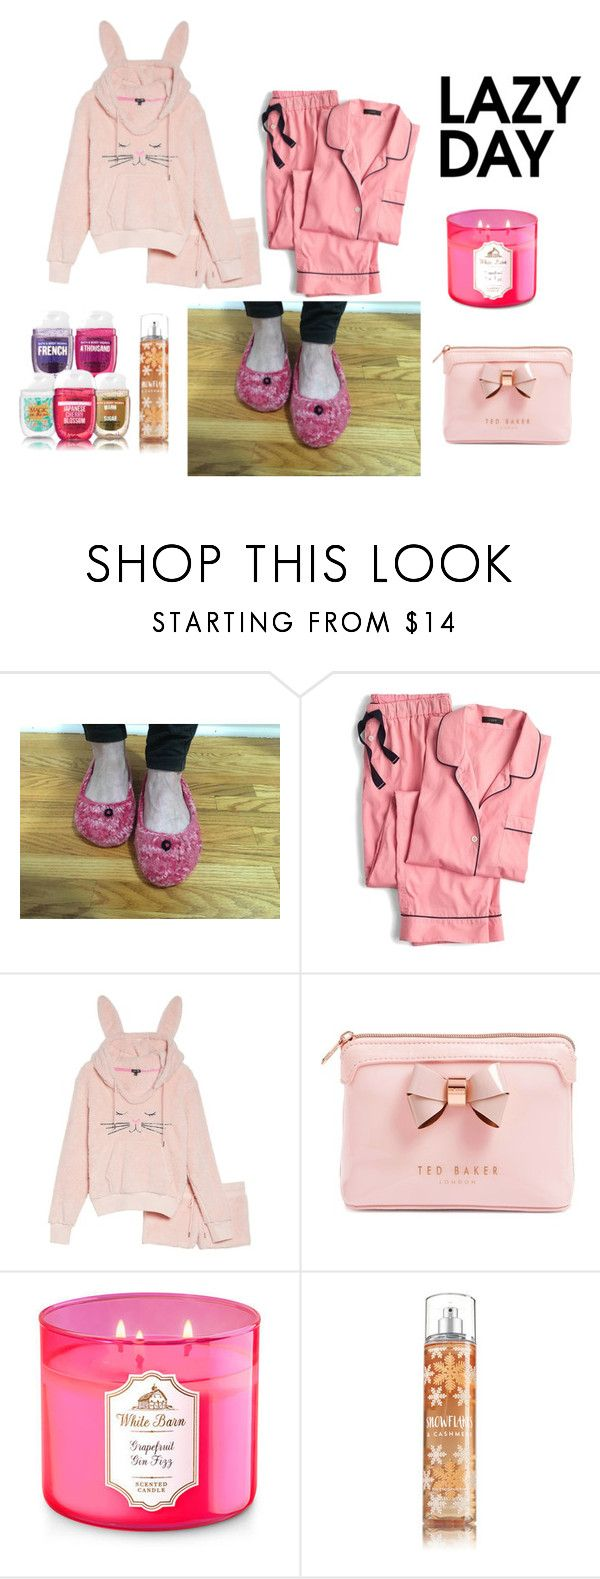 Knitted & Felted Wool Slippers,Ladies/Teen, Knitted Pink Slippers by bamasbabes on Polyvore featuring Cozy Zoe, J.Crew and Ted Baker